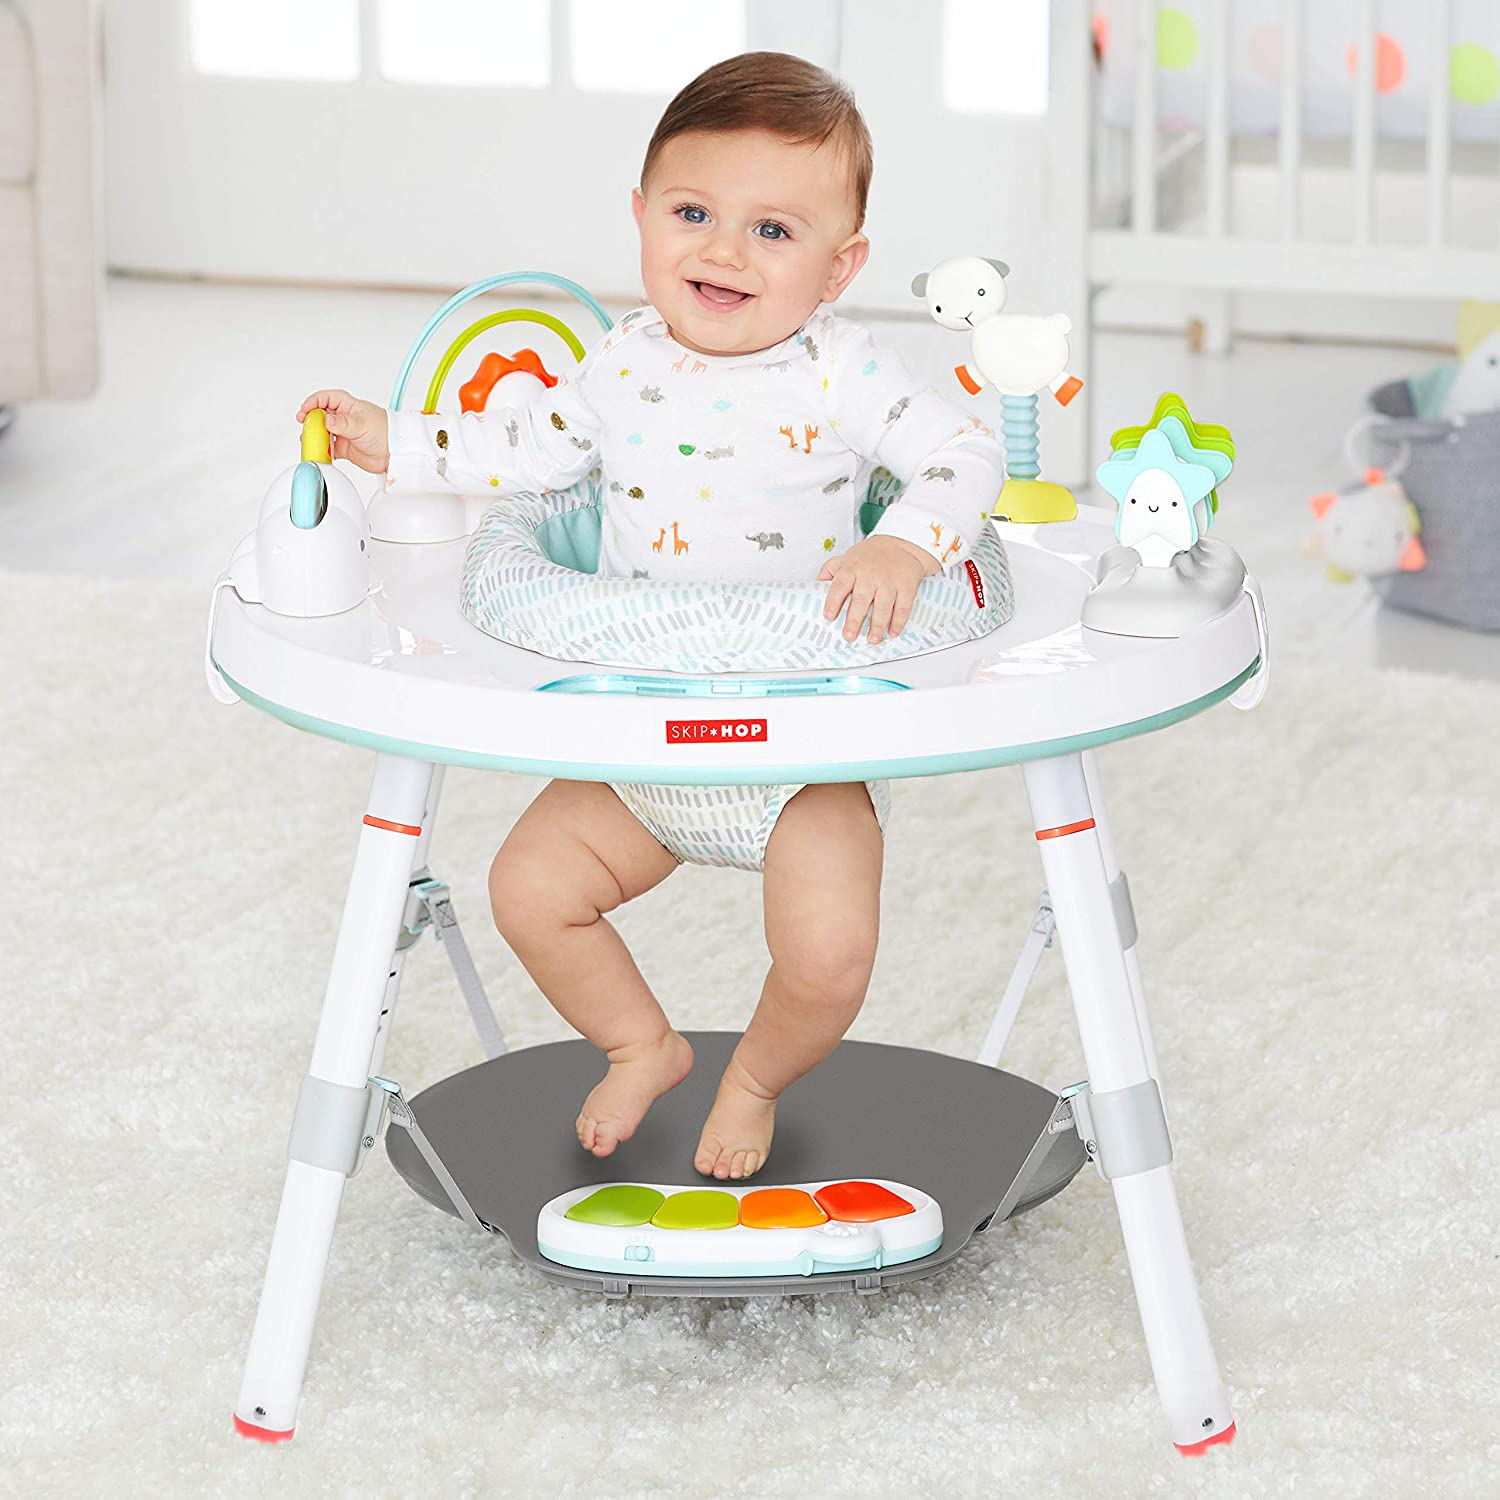 Amazon.com: Saltar Hop Explorar: Baby